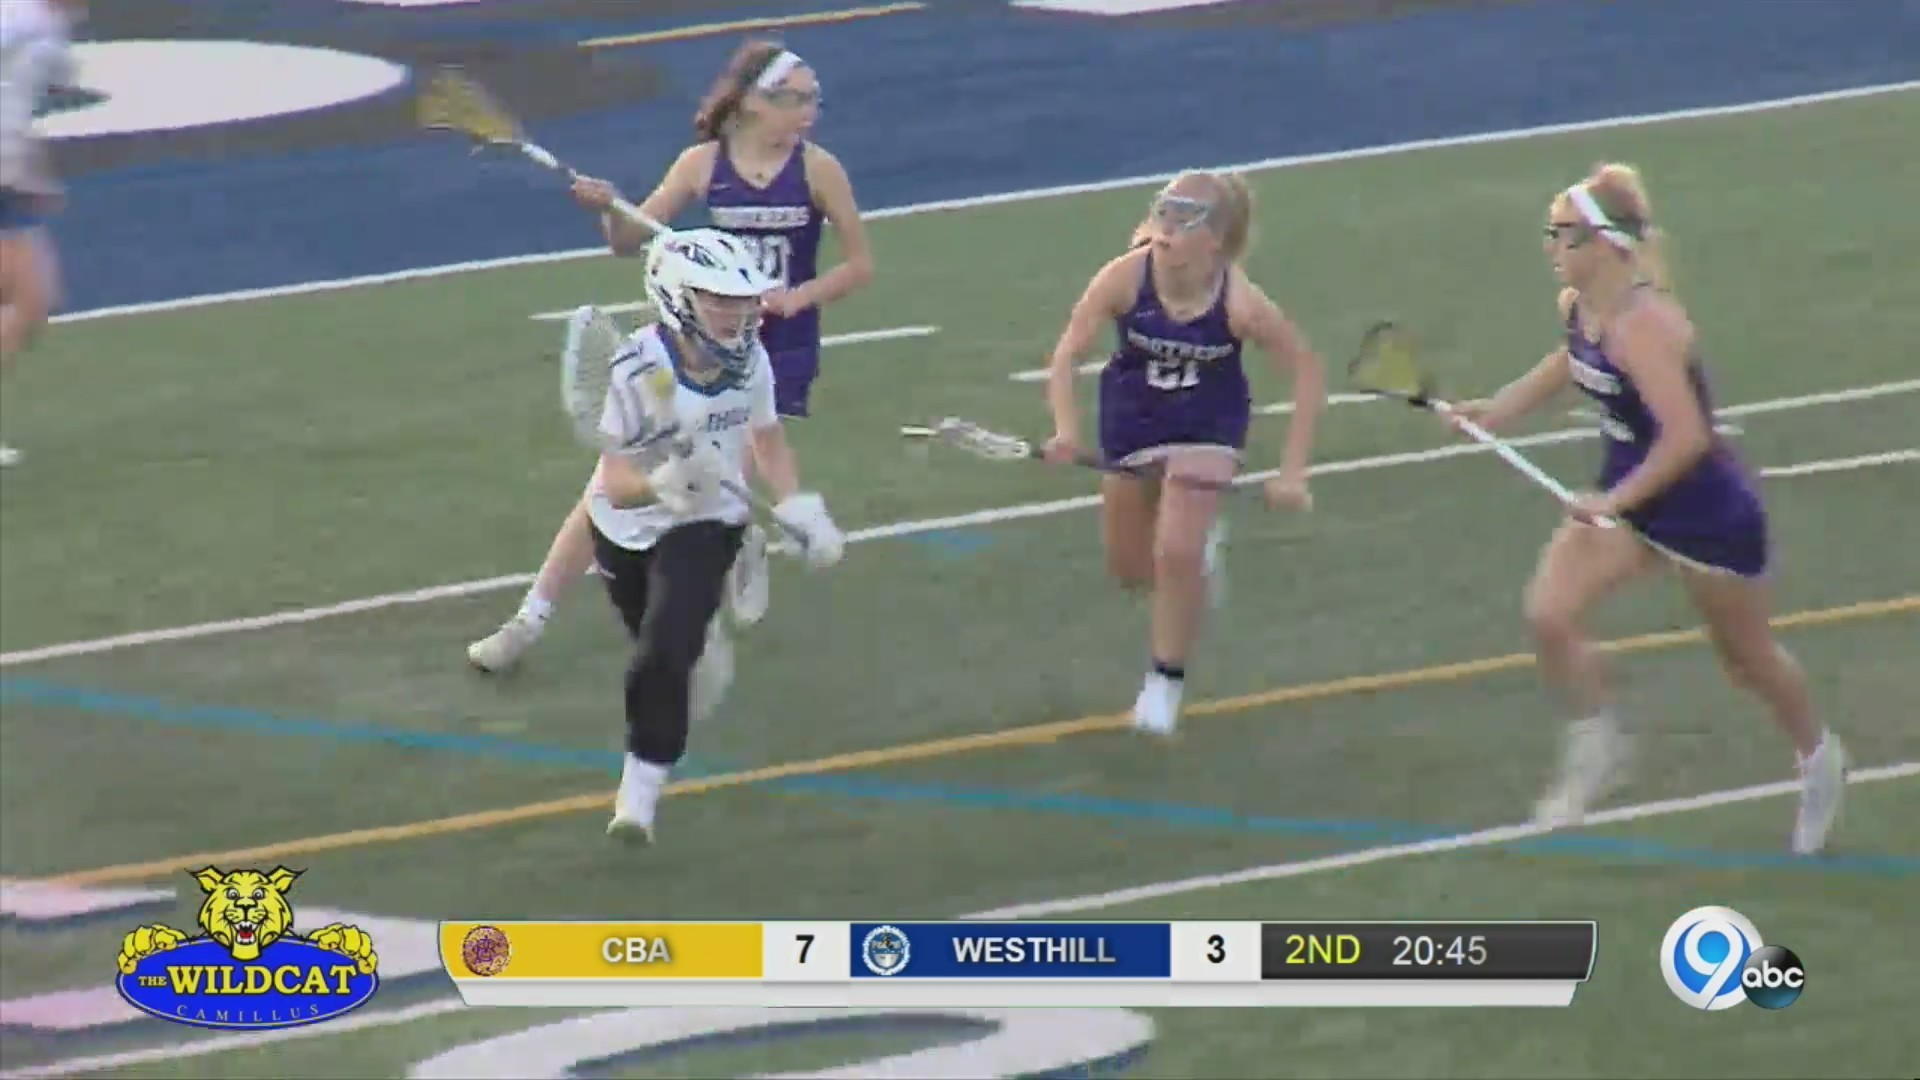 Game_of_the_Week__CBA_vs_Westhill_girls__0_20190507013219